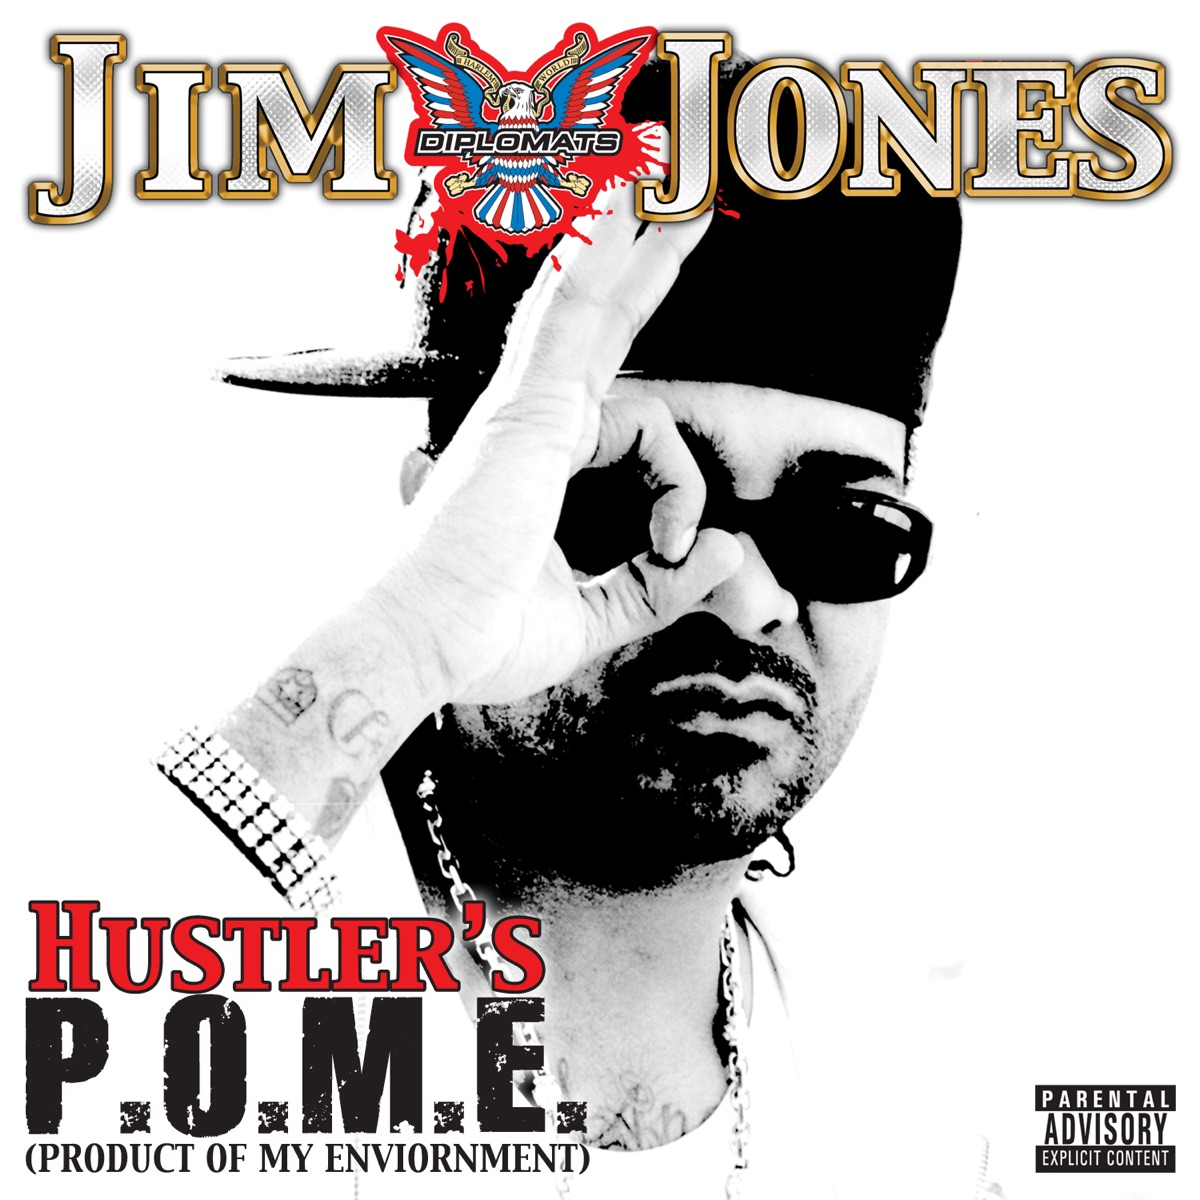 ‎Hustler's P.O.M.E. (Product of My Environment) by Jim Jones